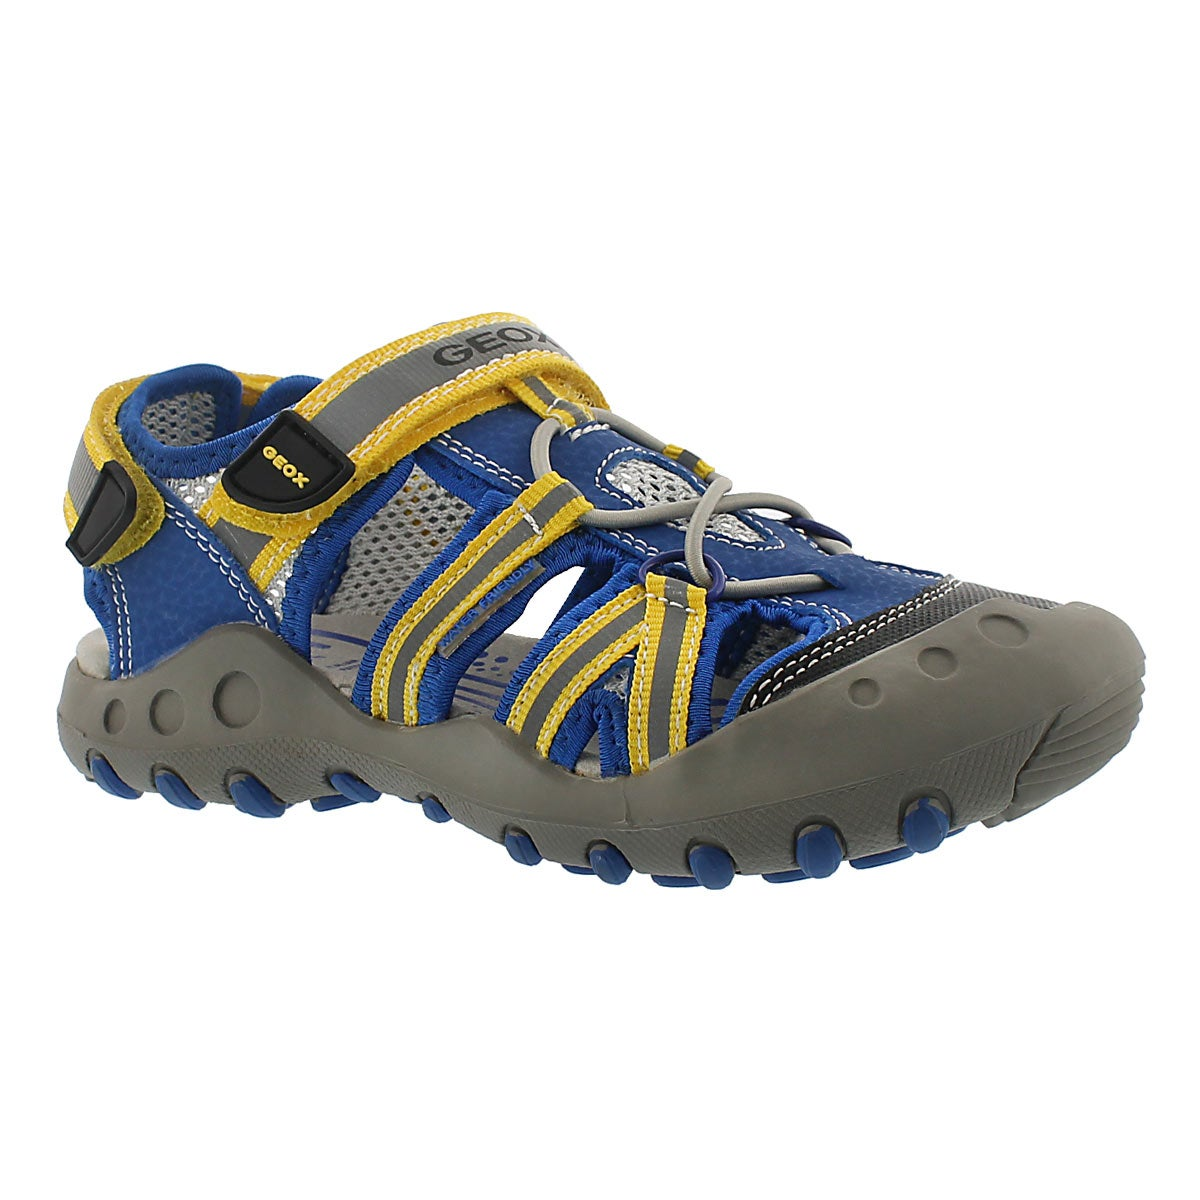 Boys' KYLE blue/yellow fisherman sandals